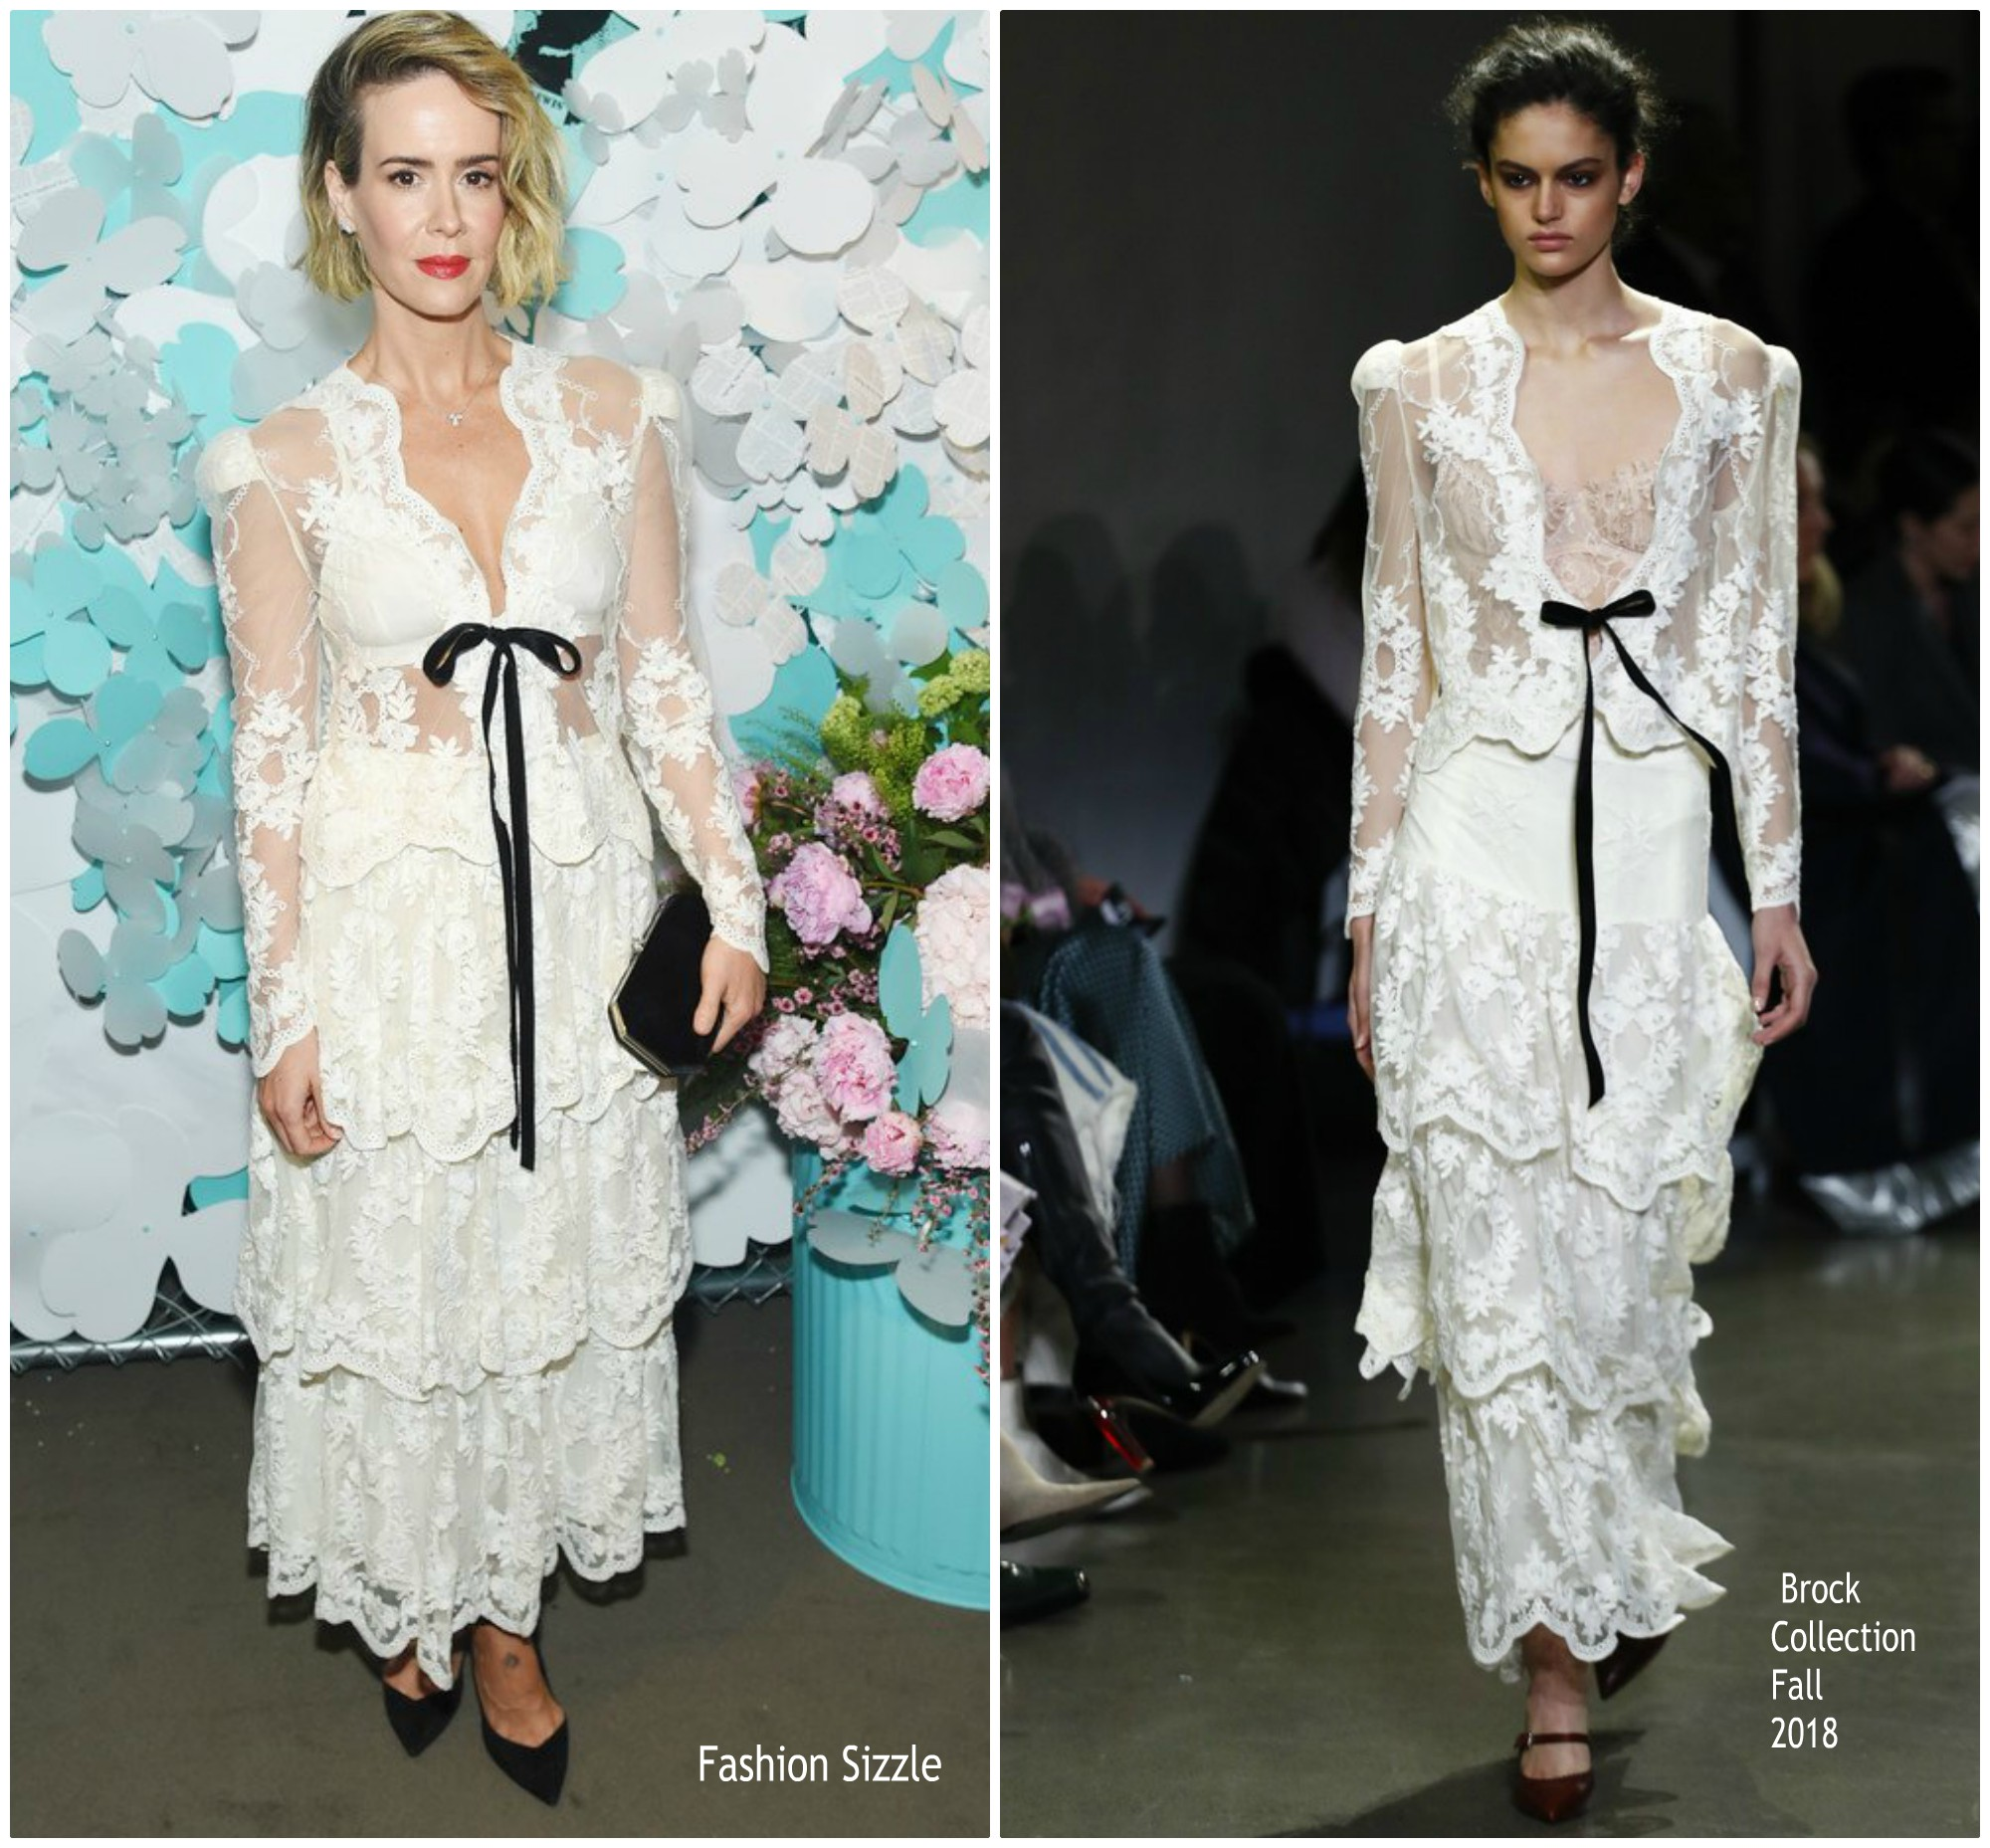 sarah-paulson-in-brock-collection-tiffany-co-paper-flowers-event-and-believe-in-dreams-campaign-launch